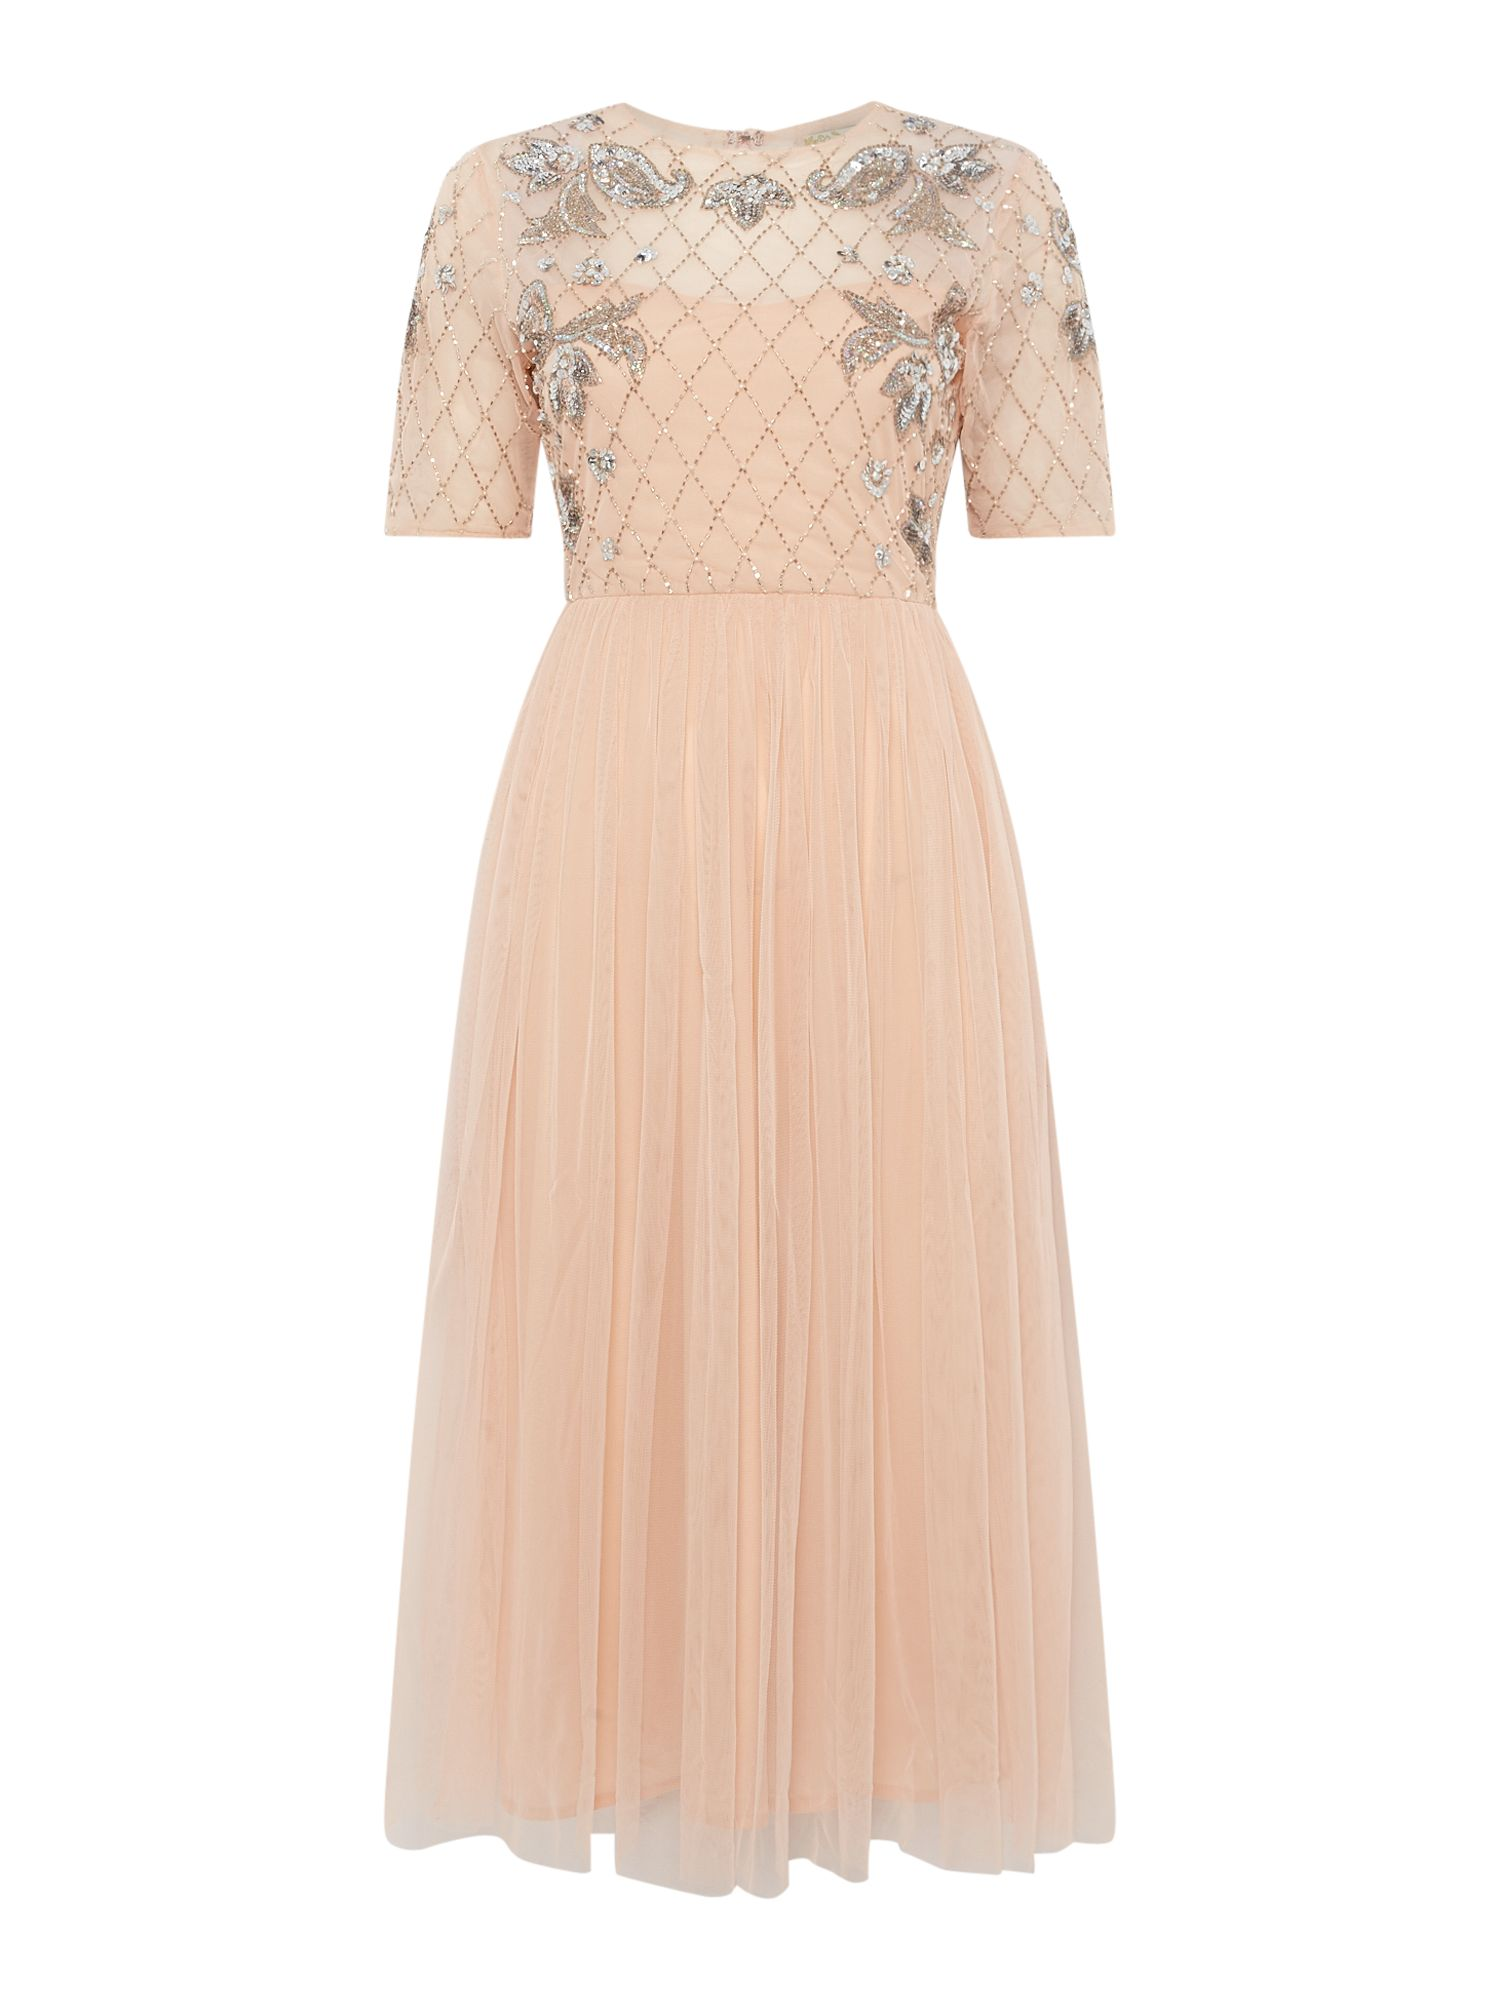 Lace and Beads Sequin top short sleeve fit and flare dress, Nude